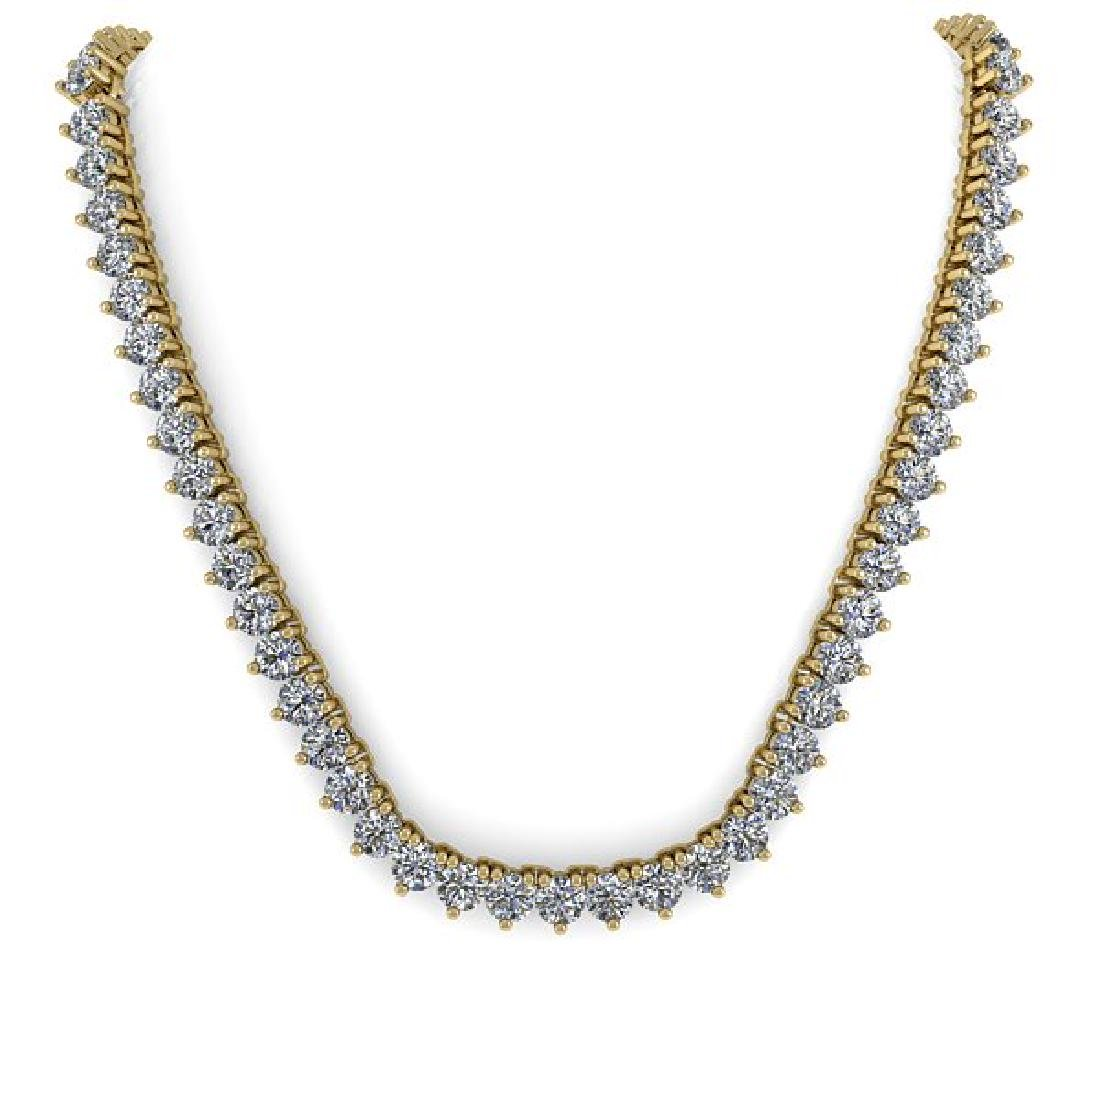 68 CTW Solitaire Certified SI Diamond Necklace 14K - 3